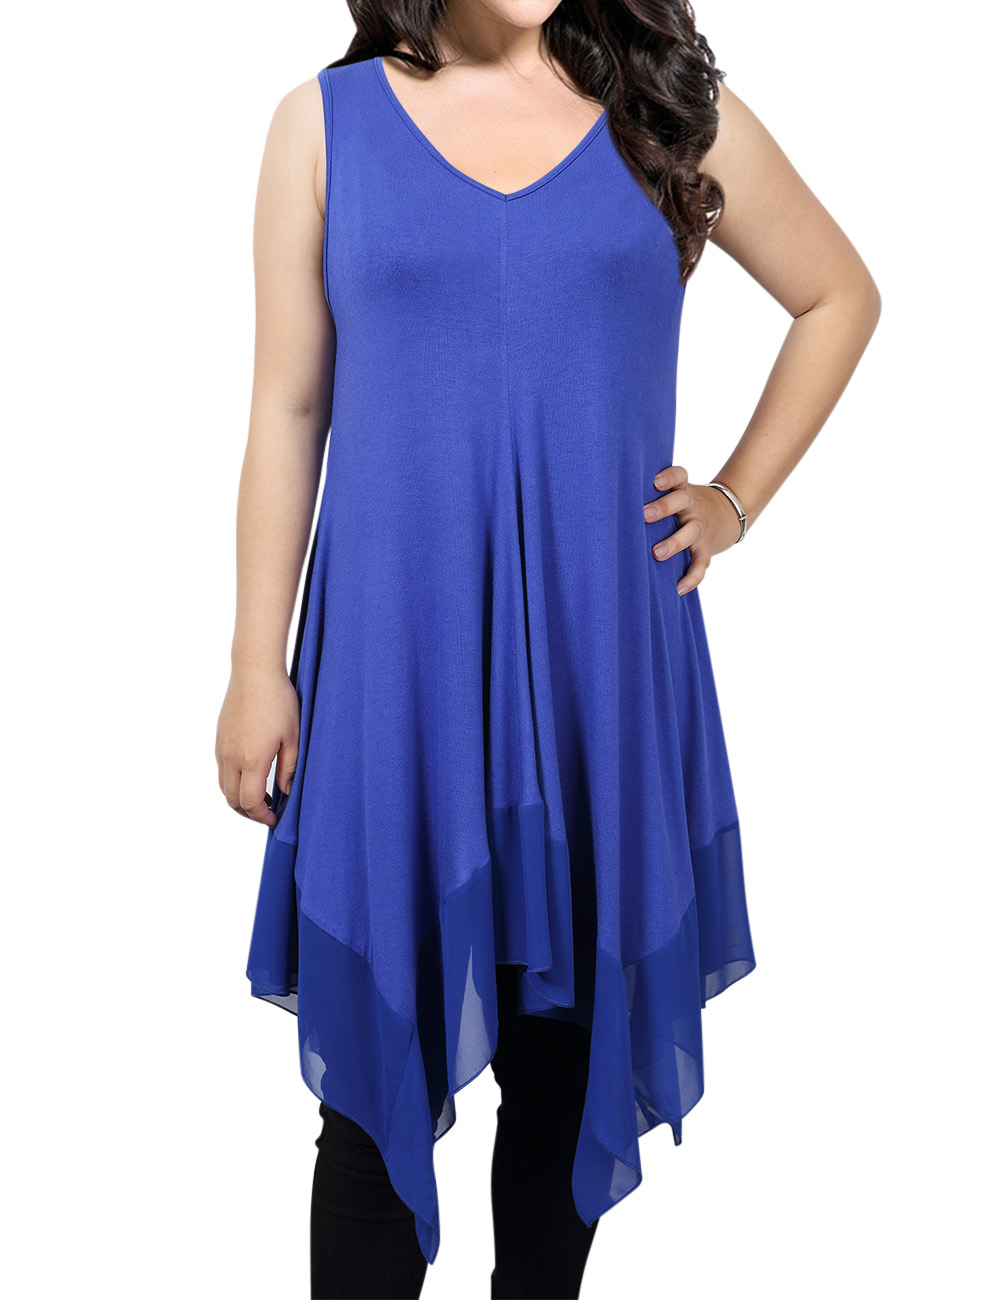 Kojooin Women Plus Size Solid Sleeveless Tunic for Leggings Swing Flare Tank Tops